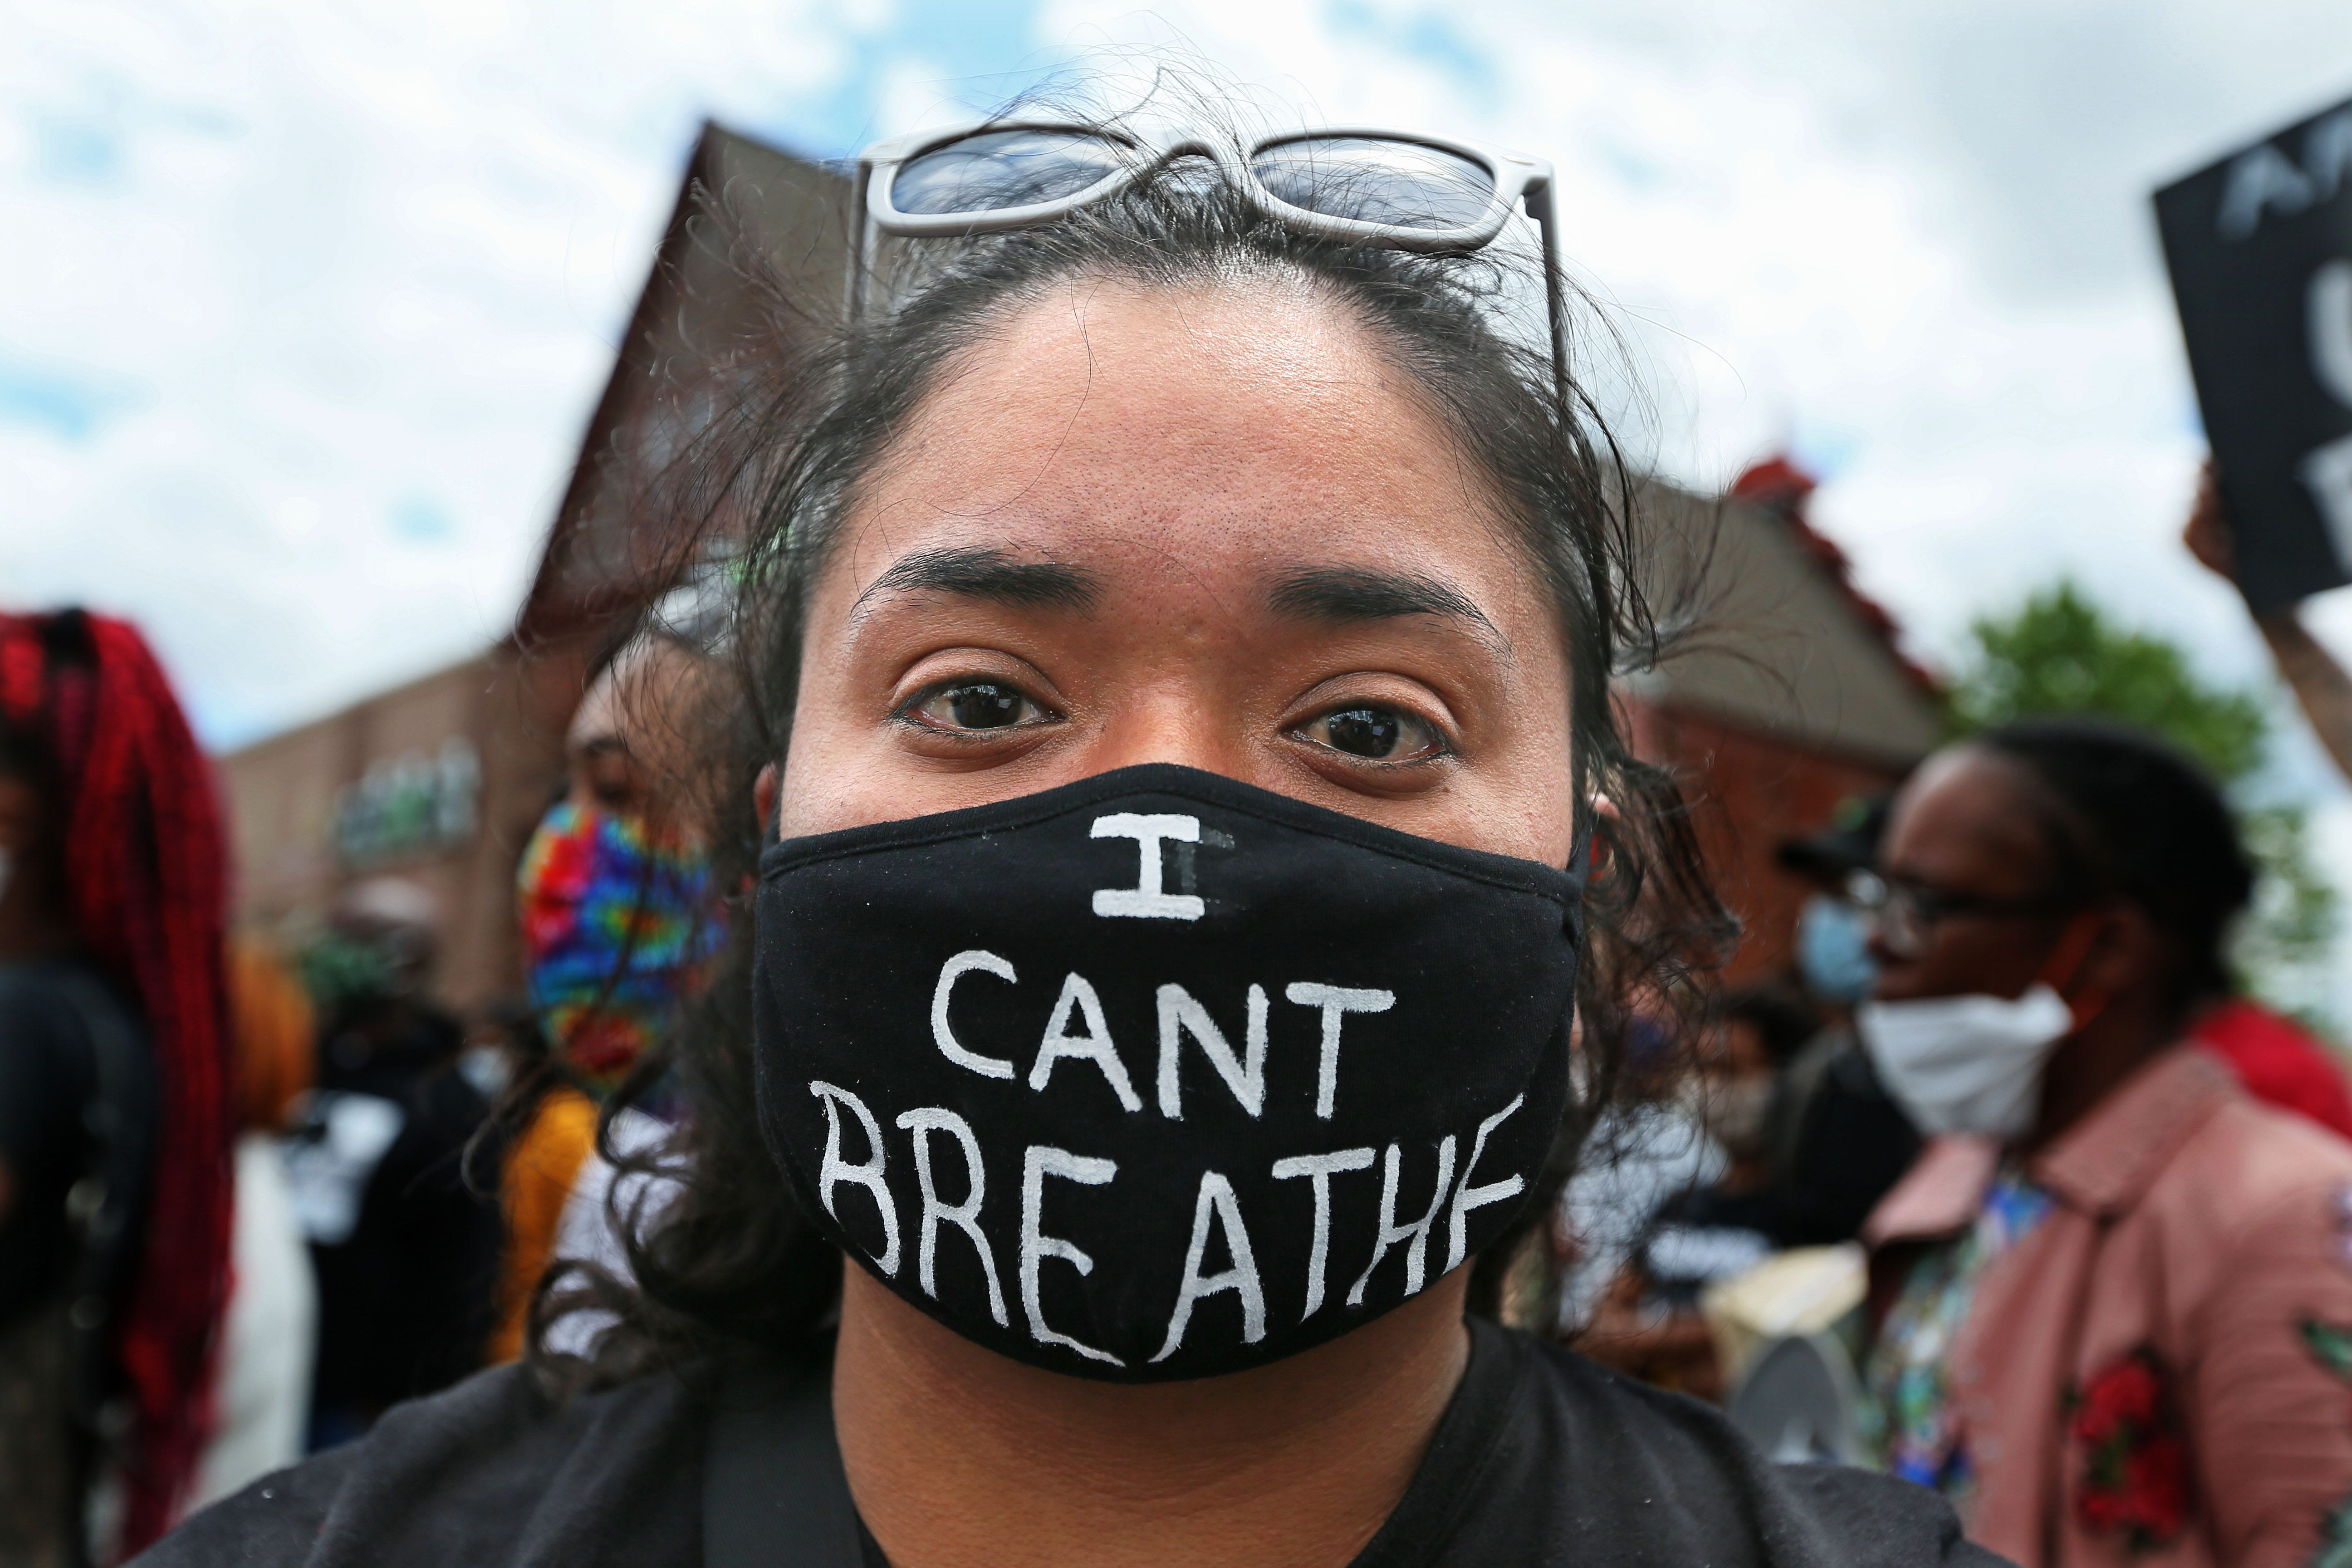 Alondra Garcia, a second grade MPS teacher, wears a mask she made to remember George Floyd, who was killed by a Minneapolis police officer, during a protest at 26th and Center streets on Friday, May 29, 2020.  Garcia said she had friends who have experienced police brutality and she wanted her students to know she was standing for her brothers and sisters and that justice needed to be served.  A crowd of over 500 gathered for the protest. A smaller crowd of about 300 marched from the  rally to downtown Milwaukee to continue to let the protest.